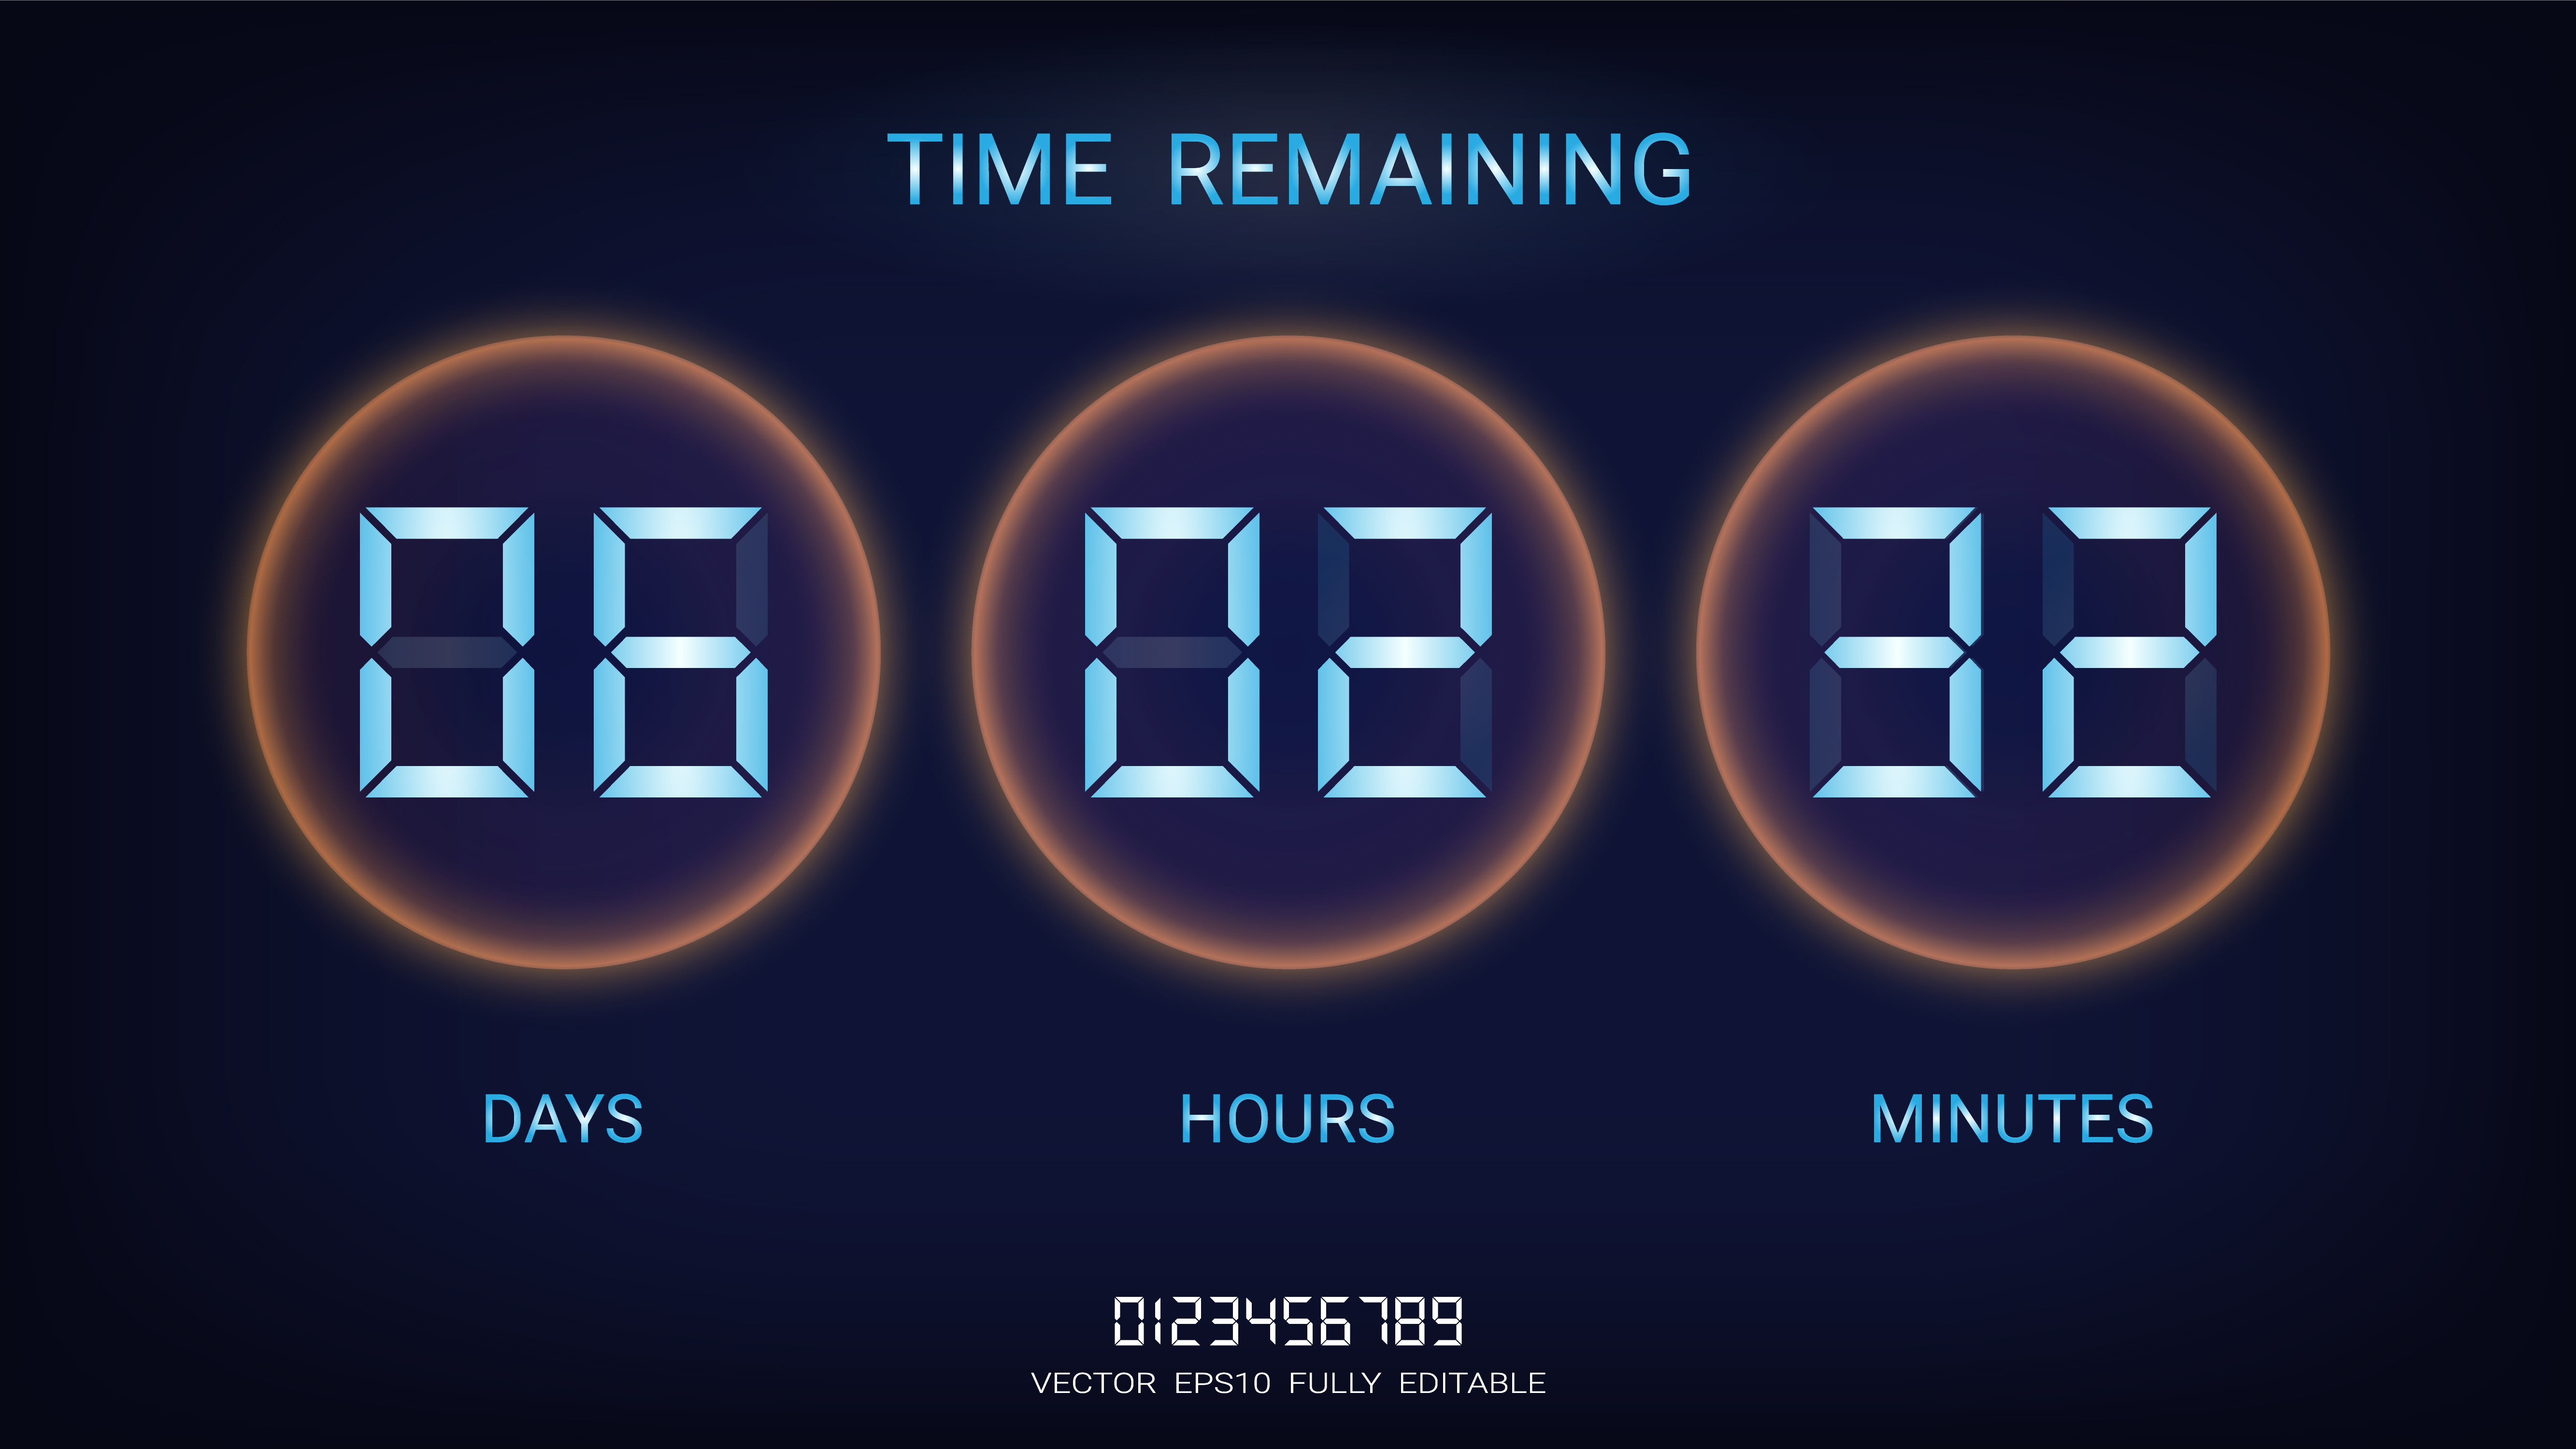 countdown timer remaining or clock counter scoreboard with